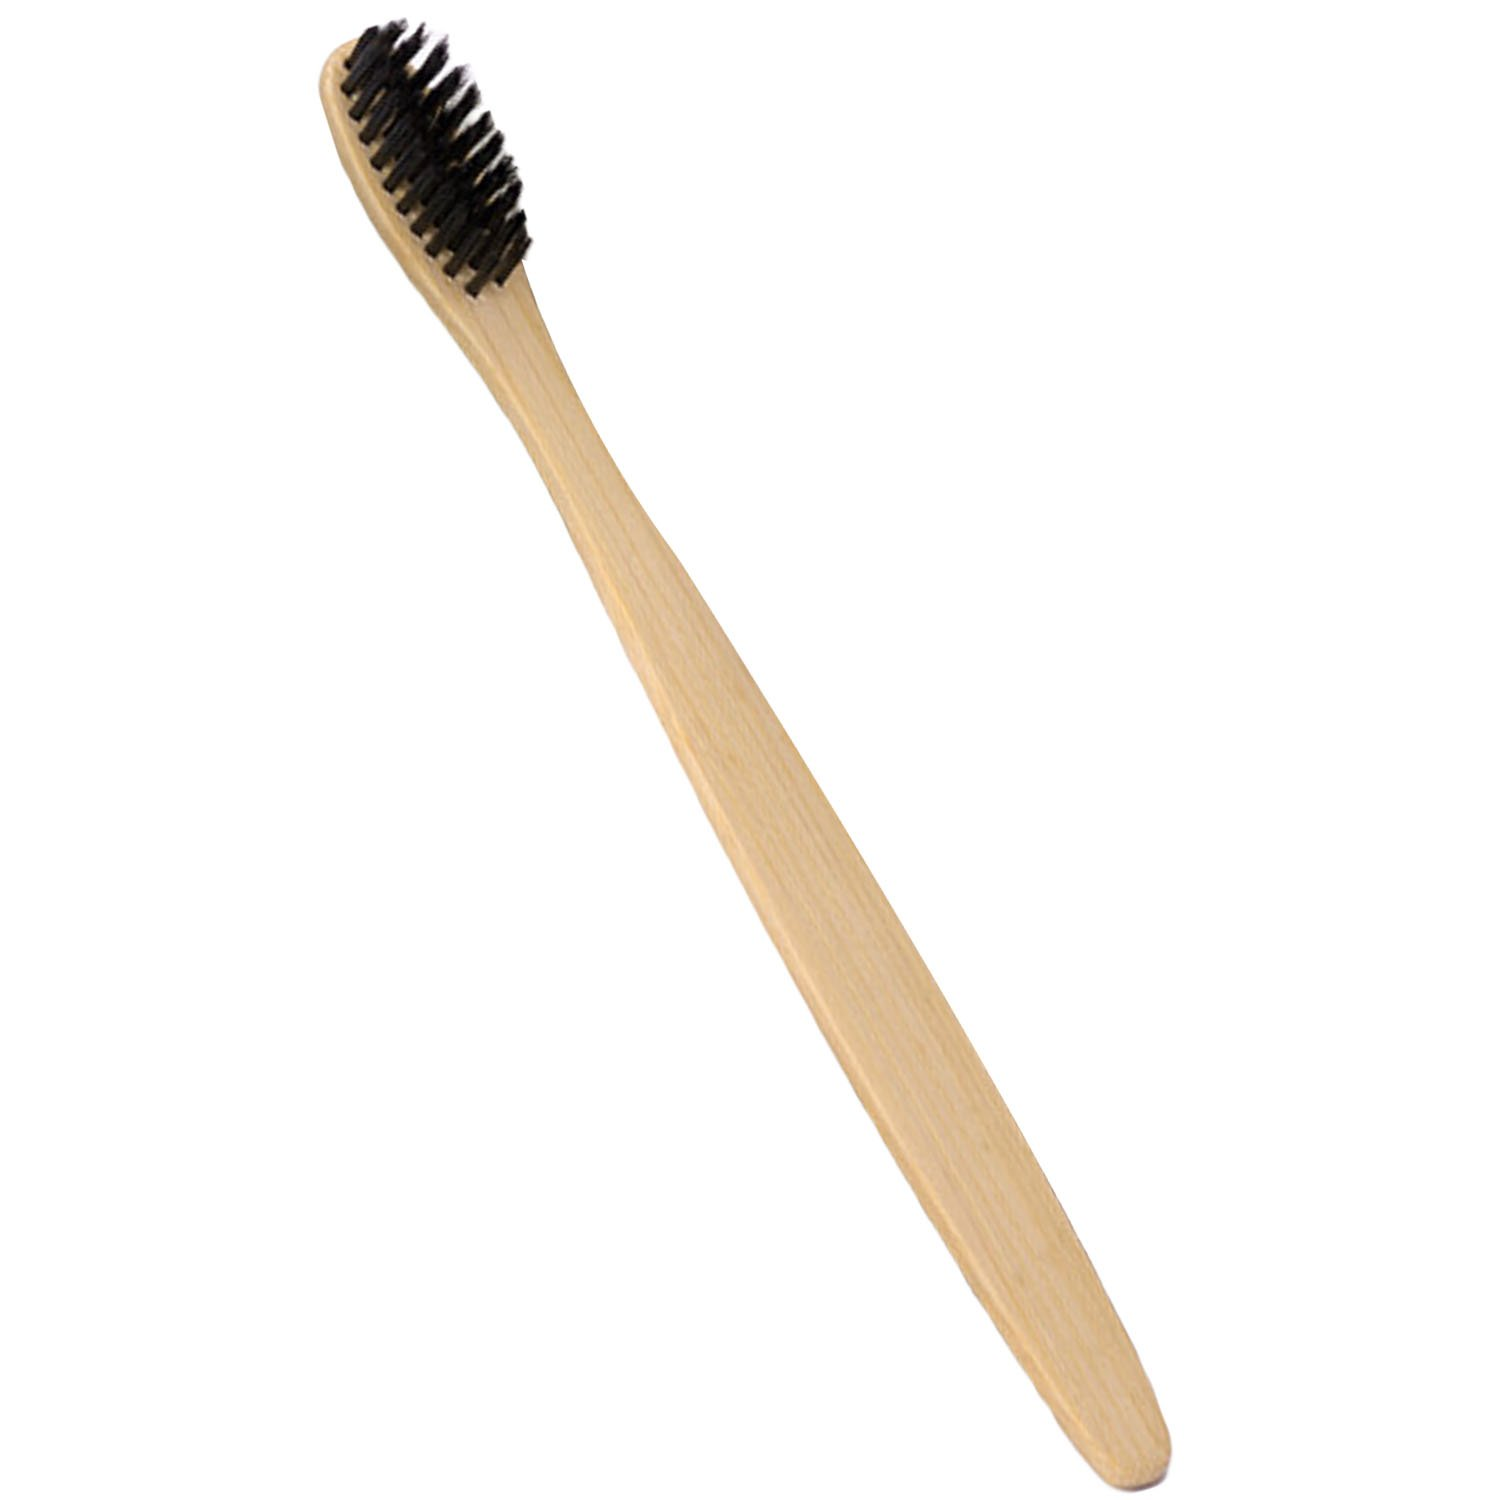 Eco-Friendly Natural Bamboo Toothbrush with Soft Charcoal Bristles Ergonomic Handle Arc Head Vococal